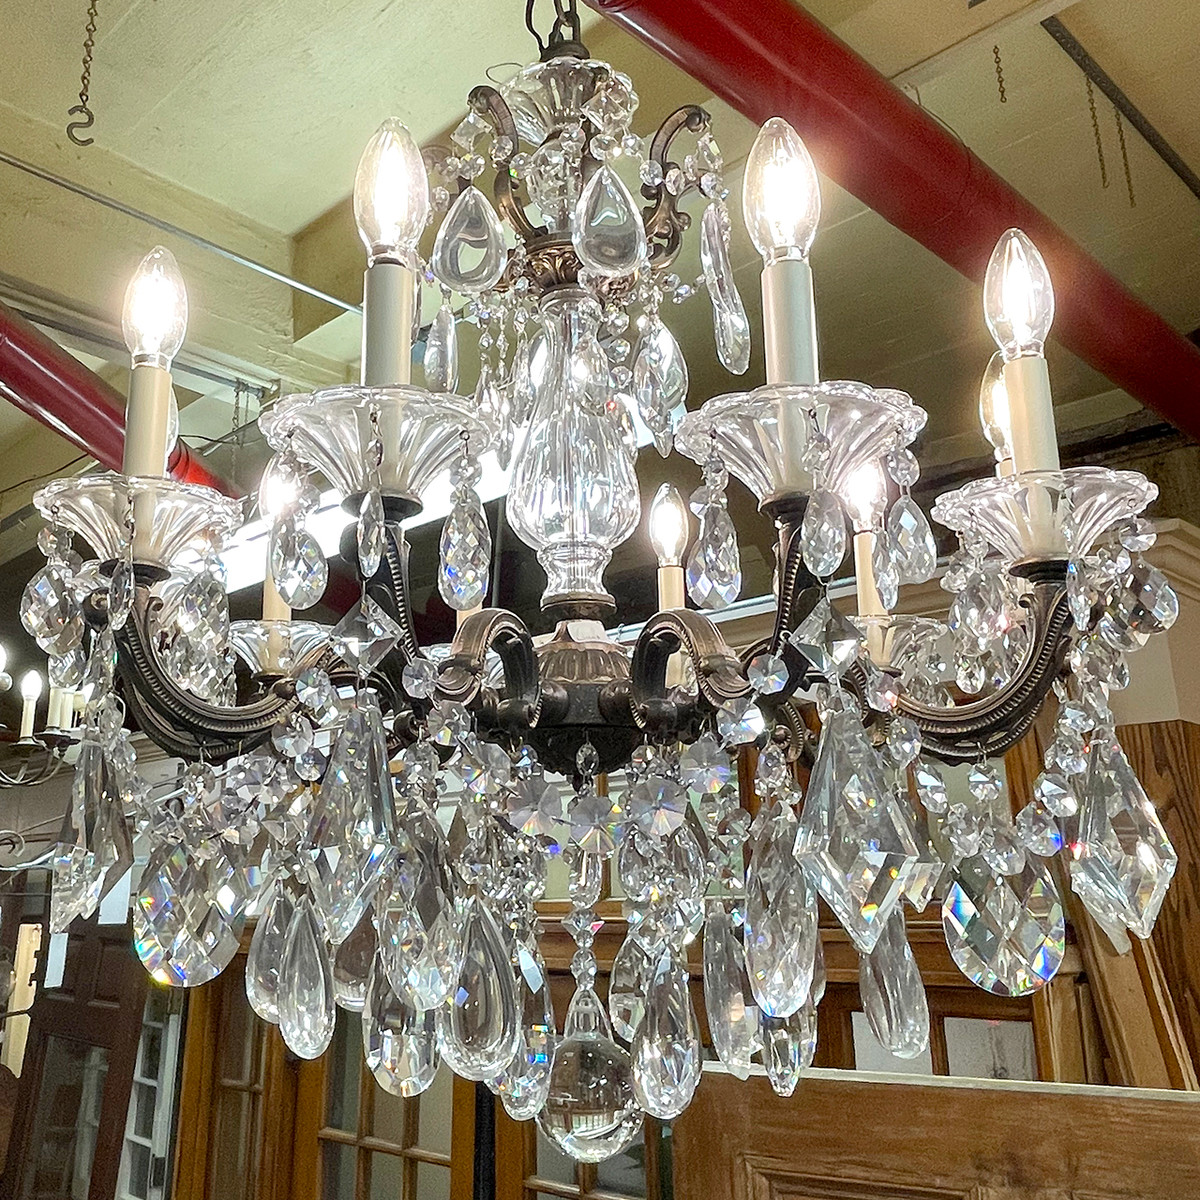 L21193 - Contemporary Cast Brass and Crystal Fixture